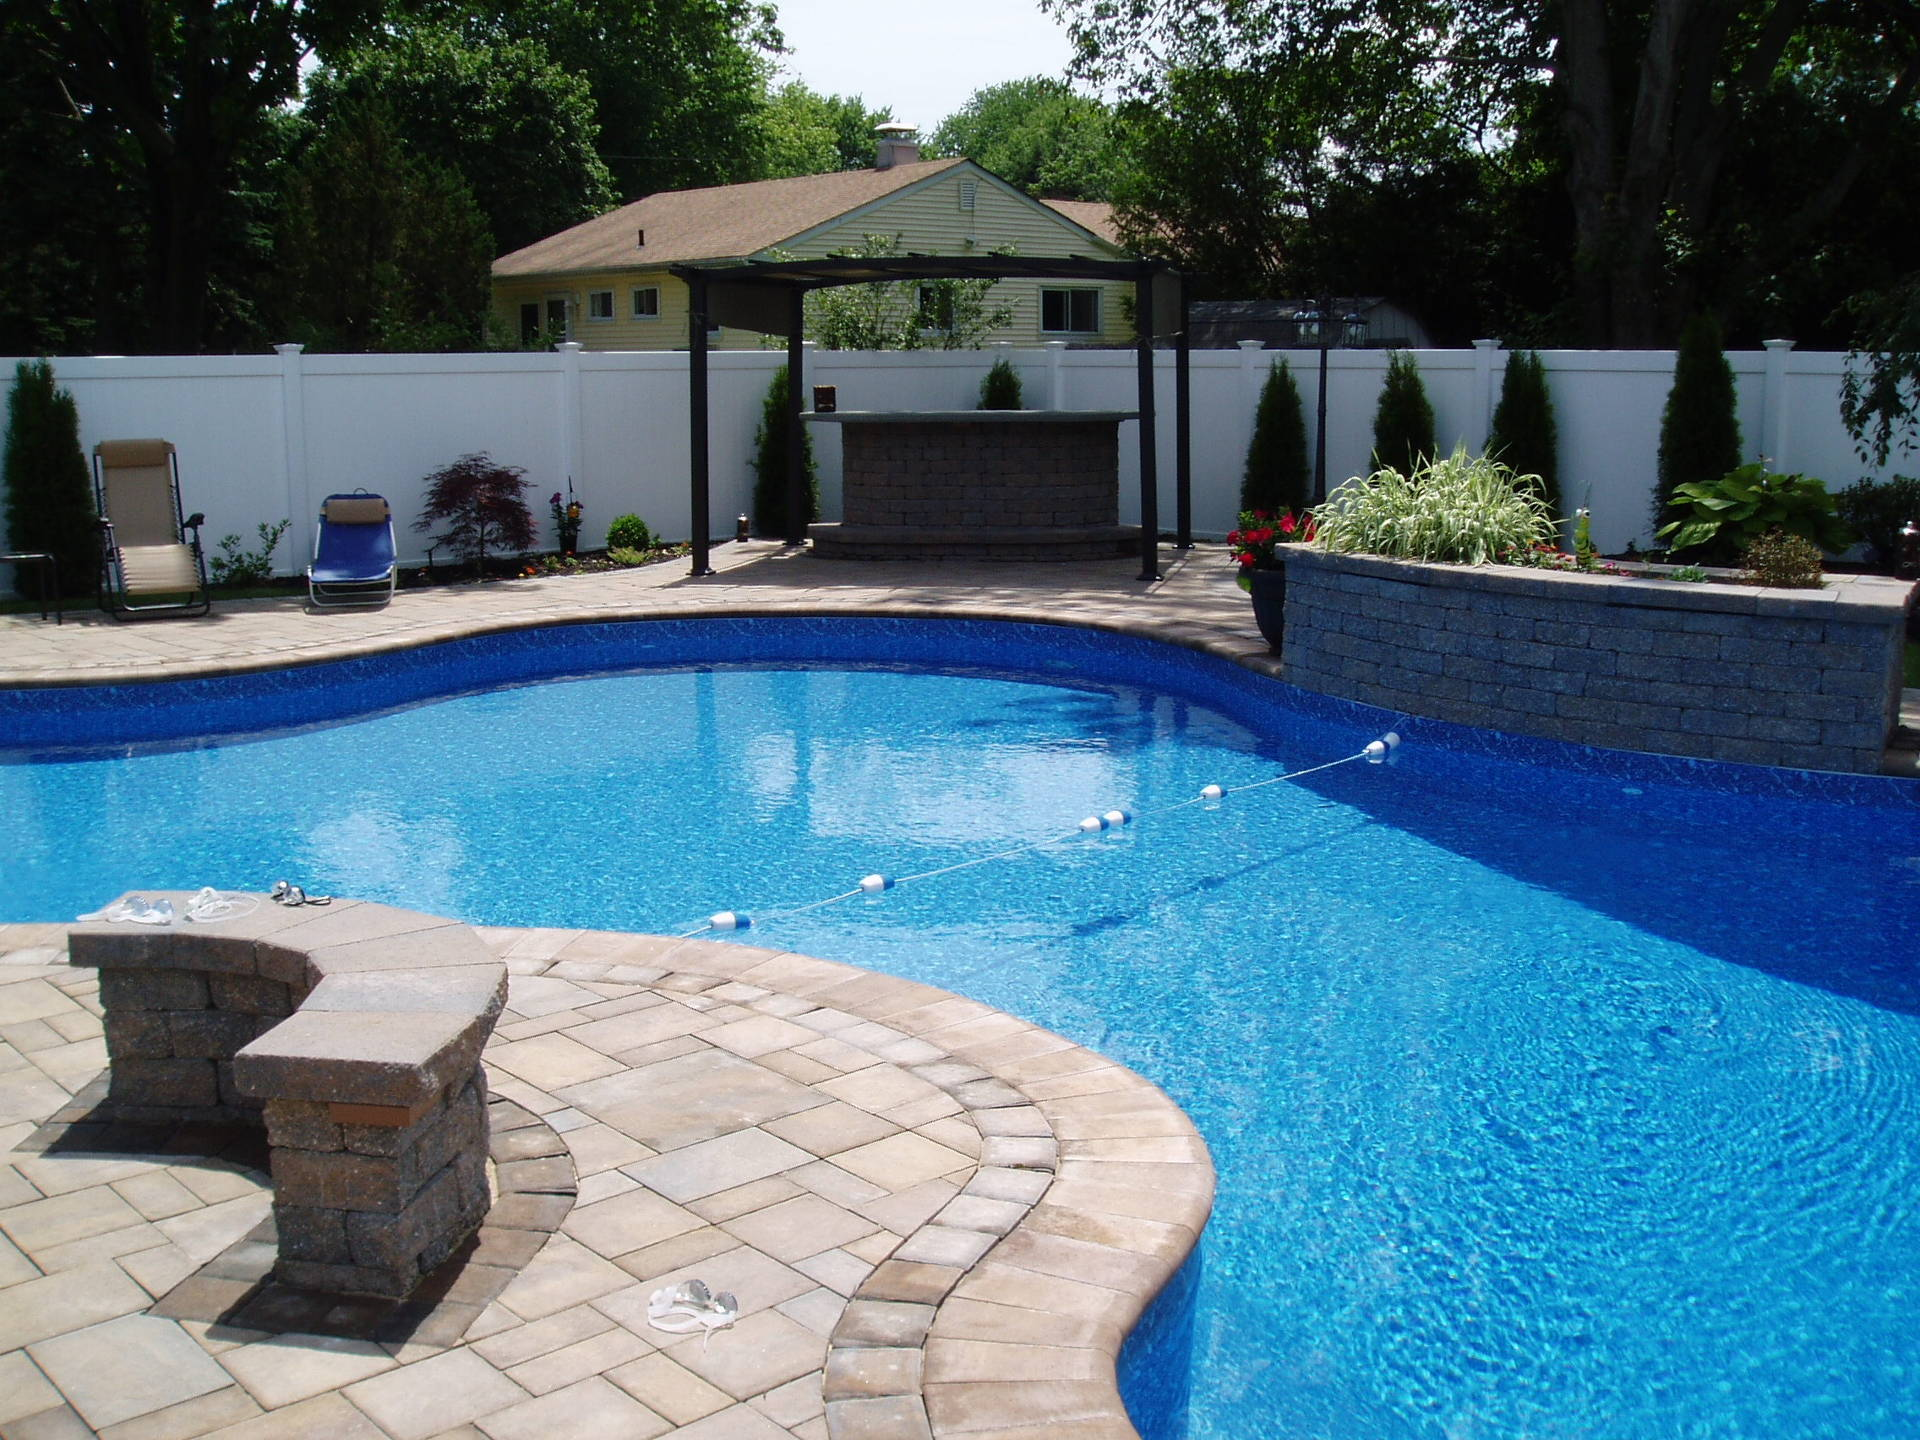 LI Poolscape Suffolk County Pool Services